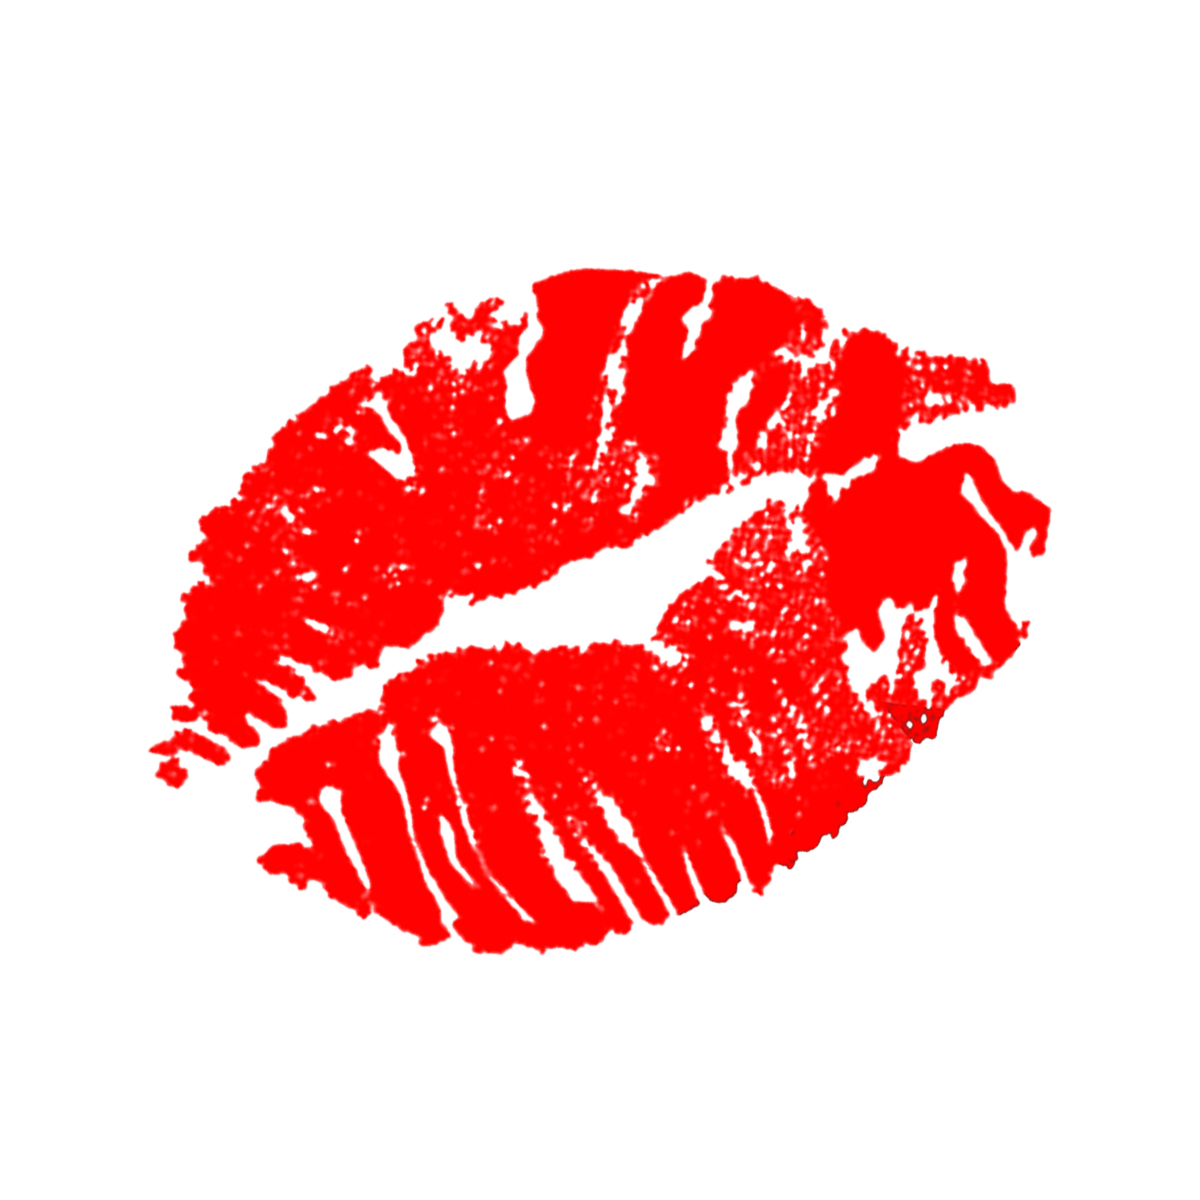 KESTON LIPS ONLY LOGO 3.jpg